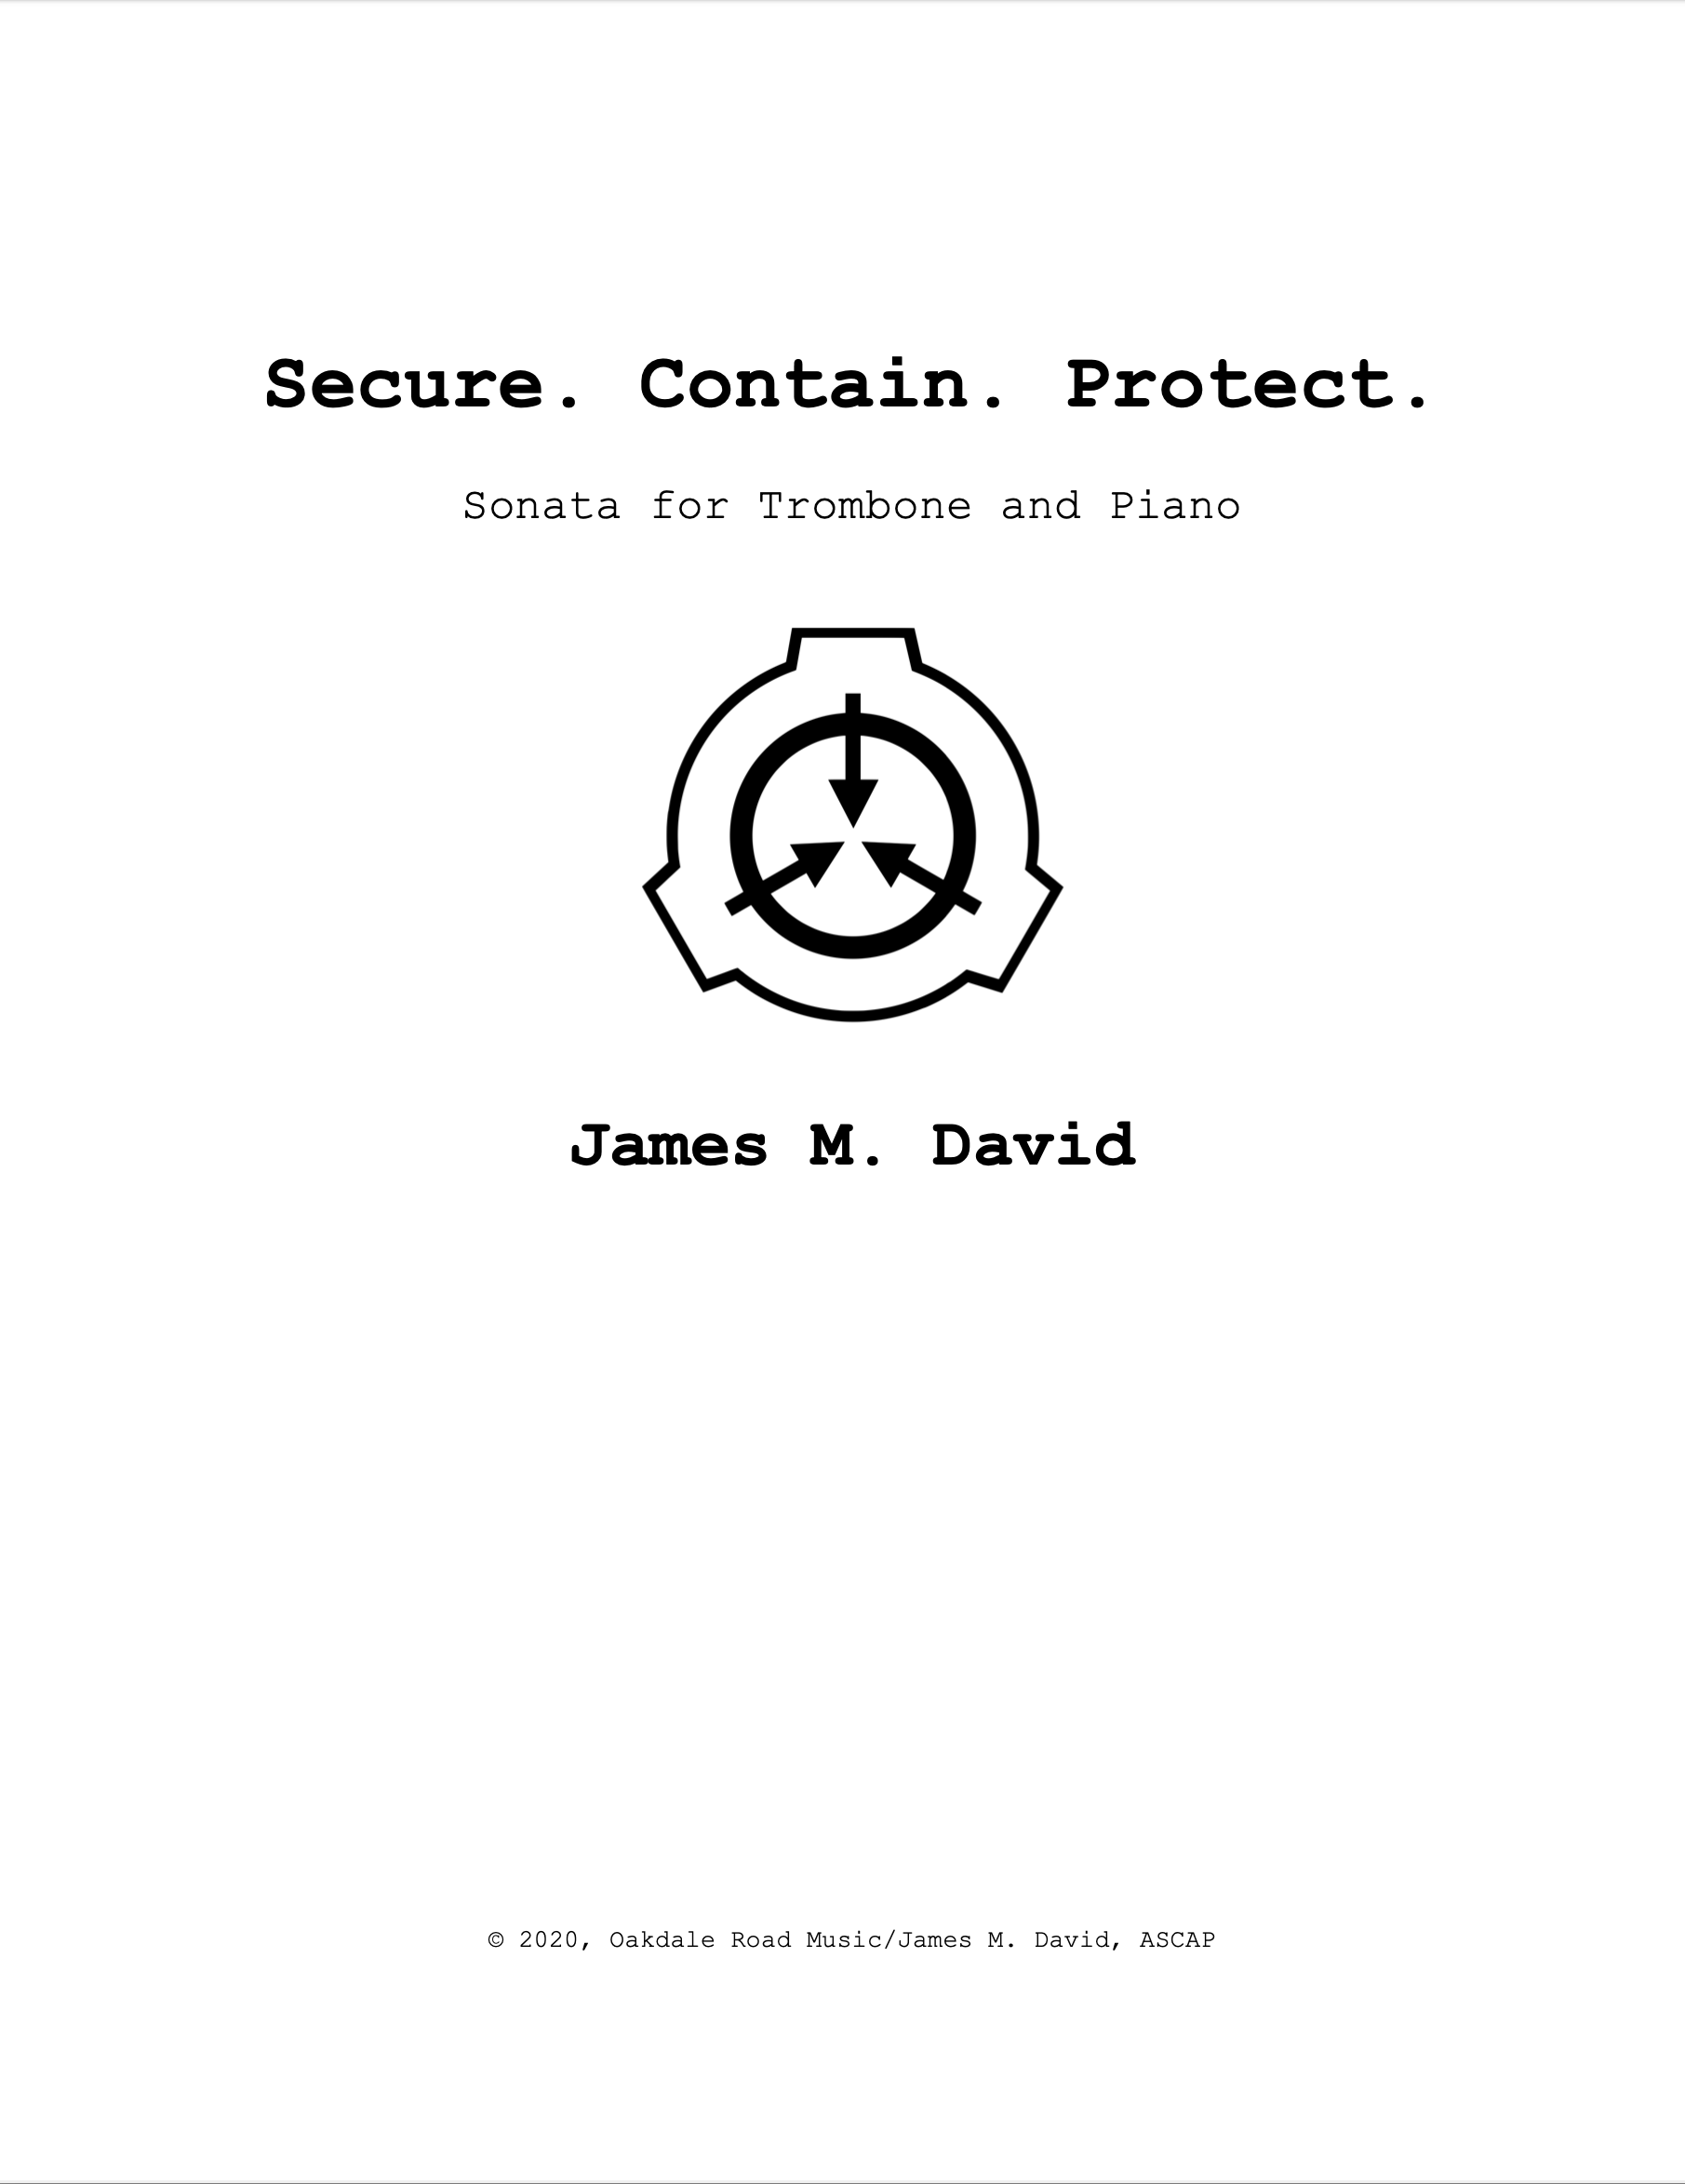 Secure.Contain.Protect by James David